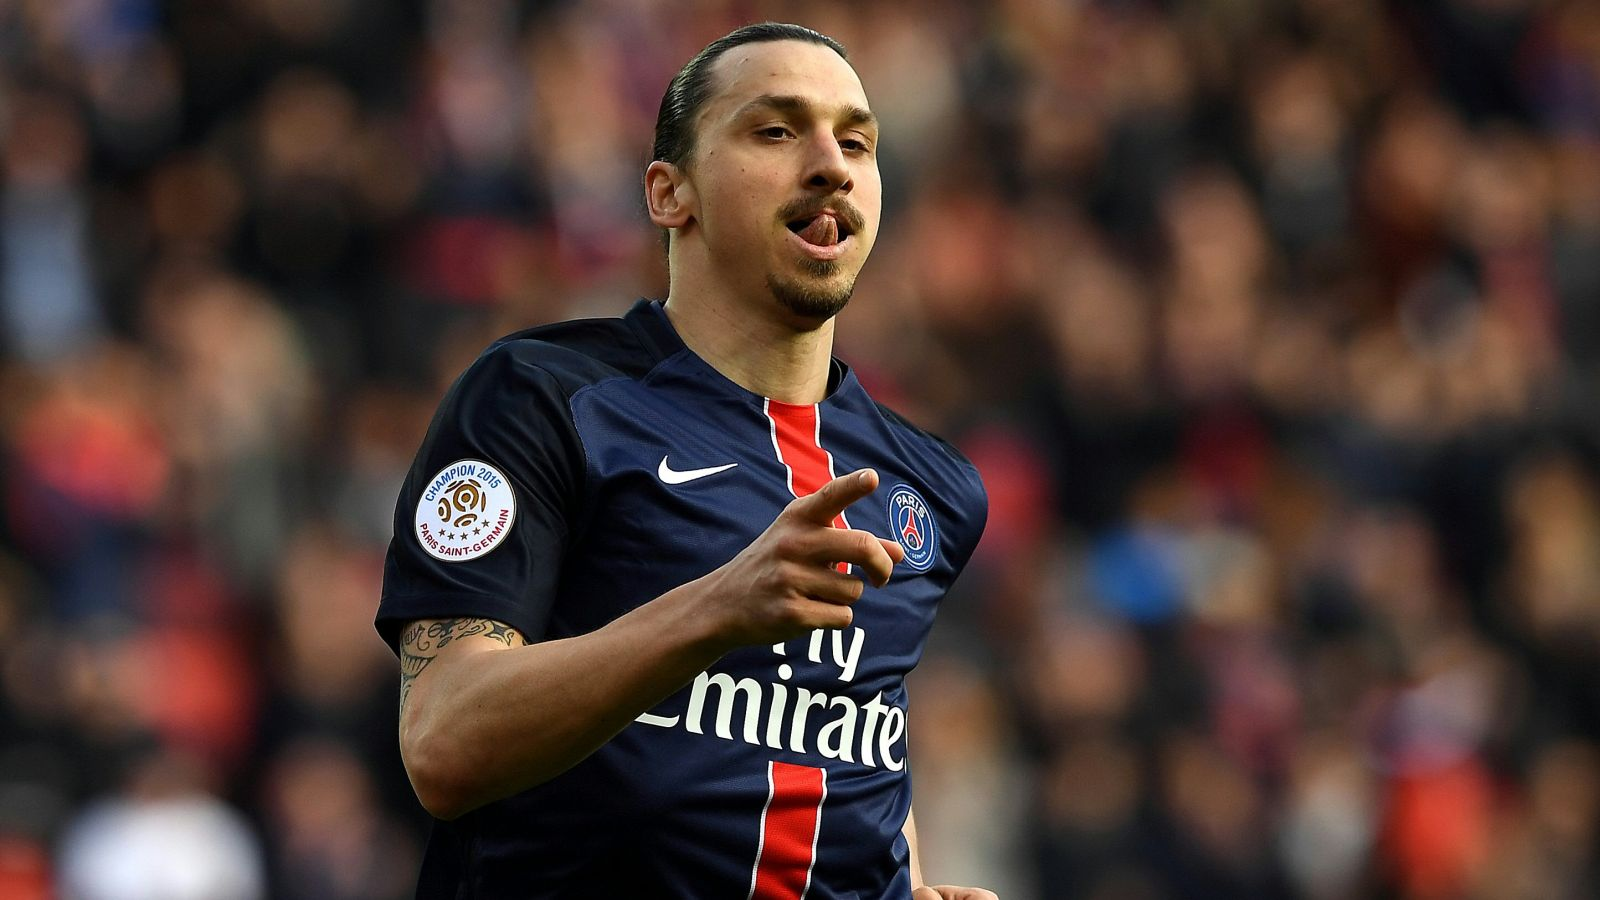 Ibrahimovic sets personal goal record as PSG routs Caen